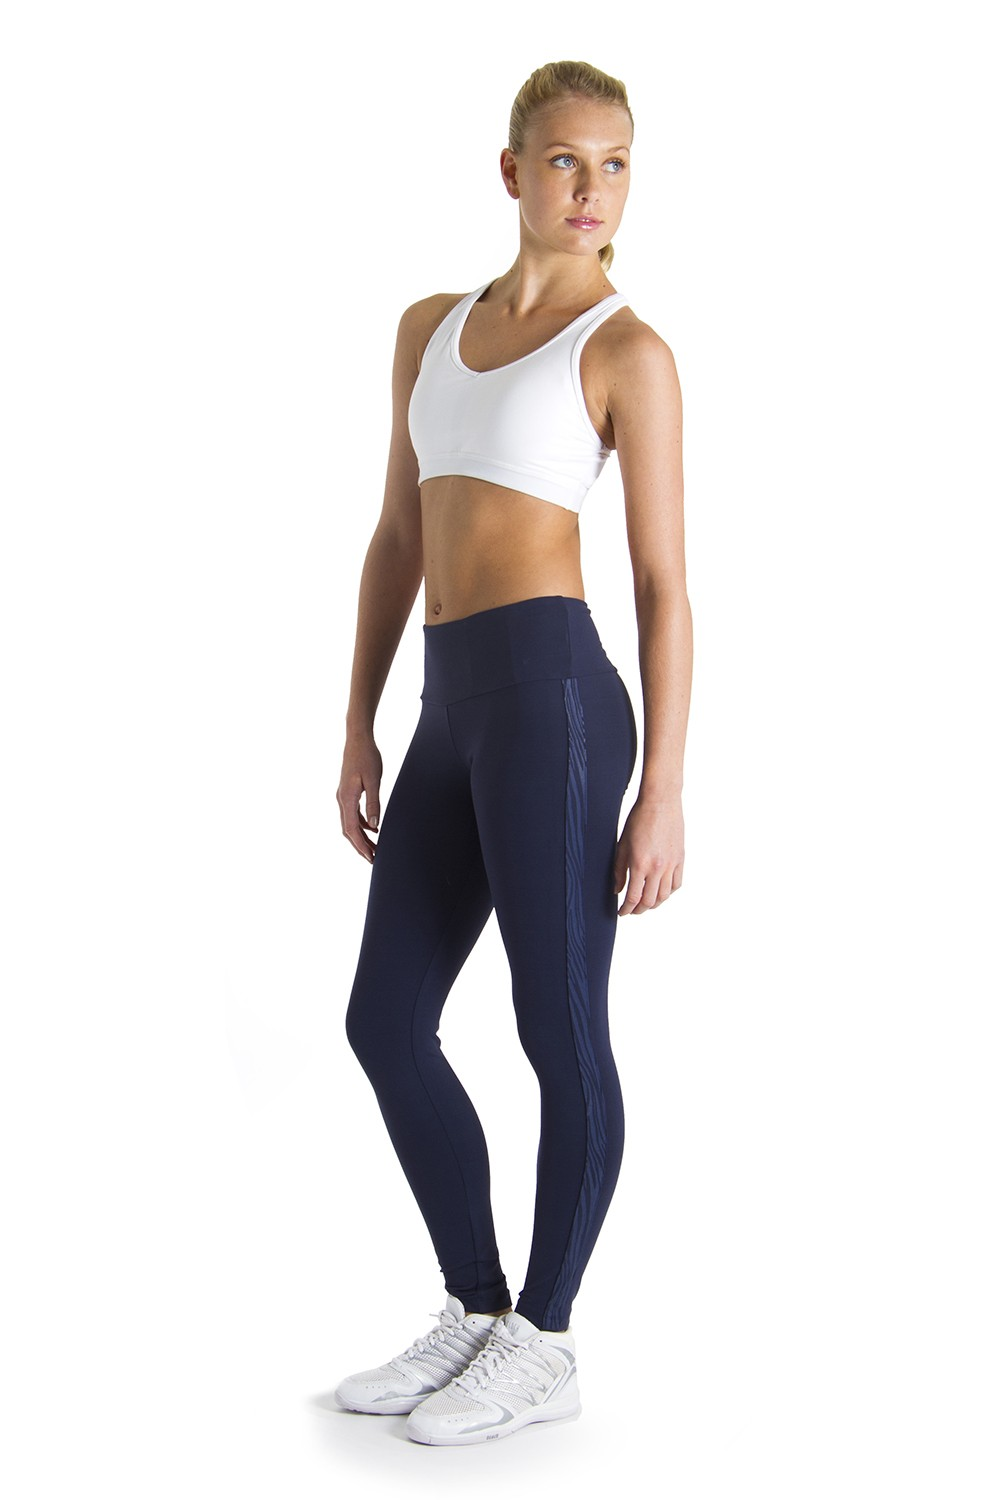 Zebra Sd Pnl Legging Women's Bottoms